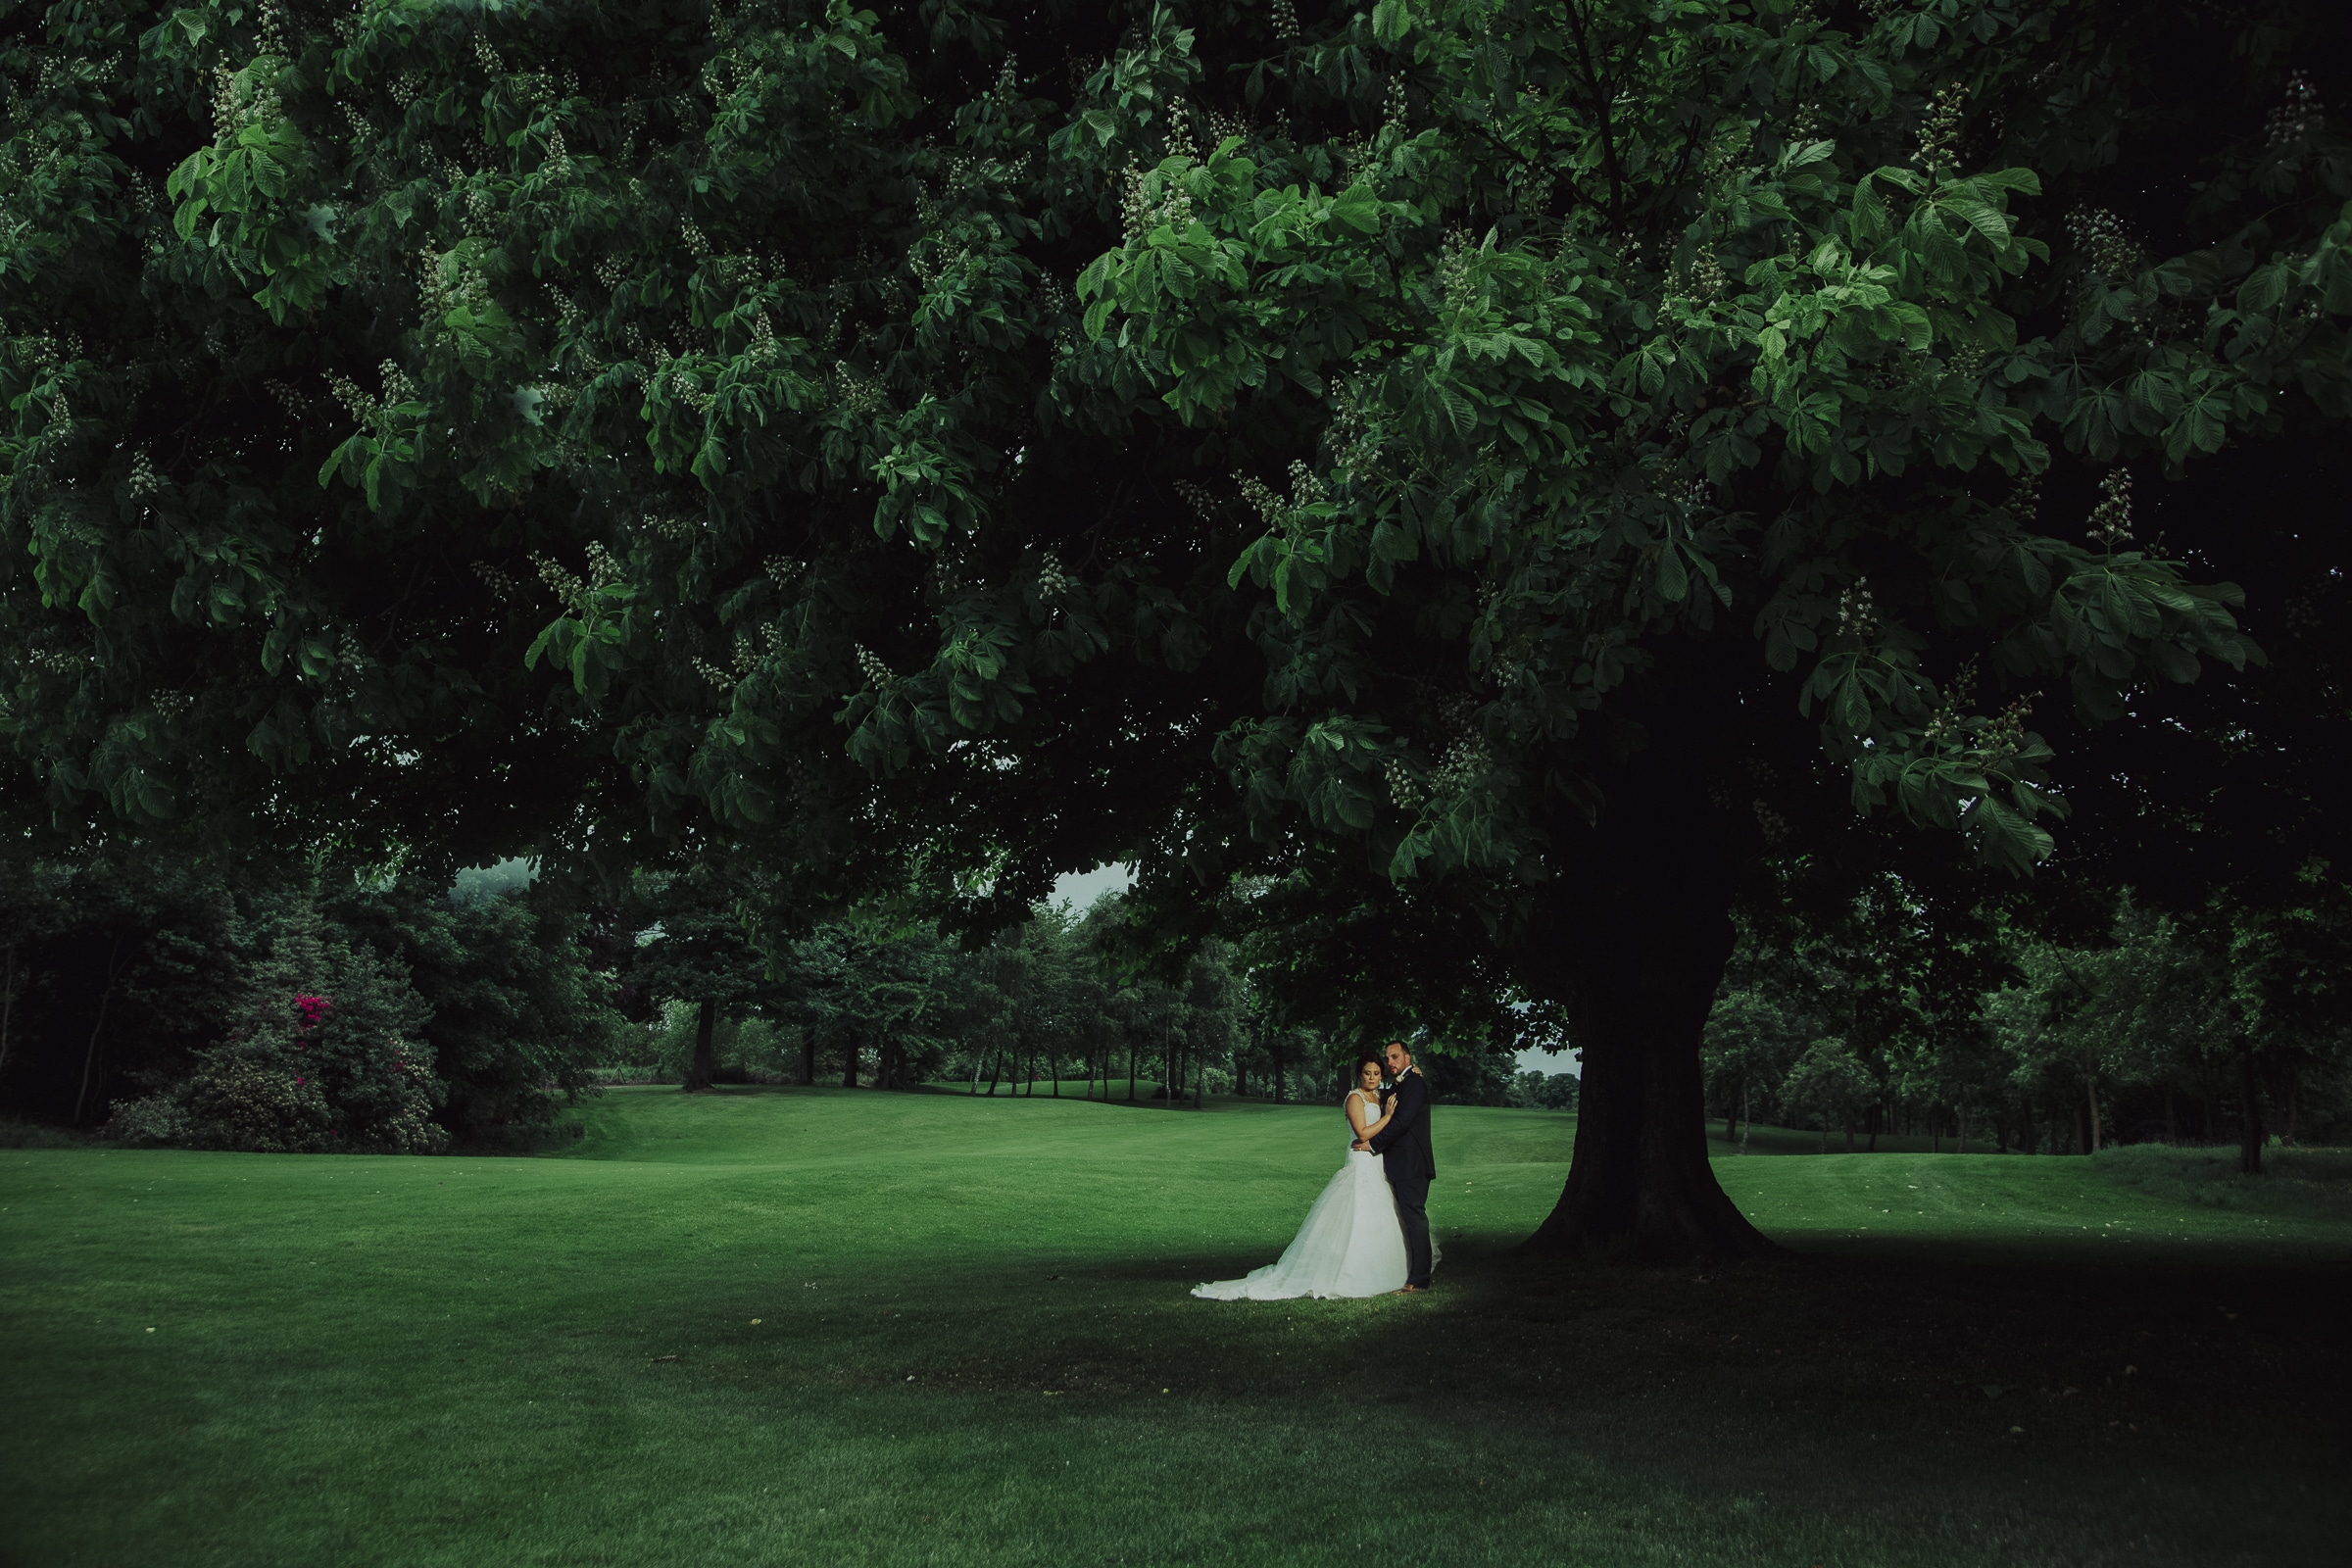 Kristina & Ashley Wedding Crow Nest Park Golf Club photograph of bride and groom under a tree